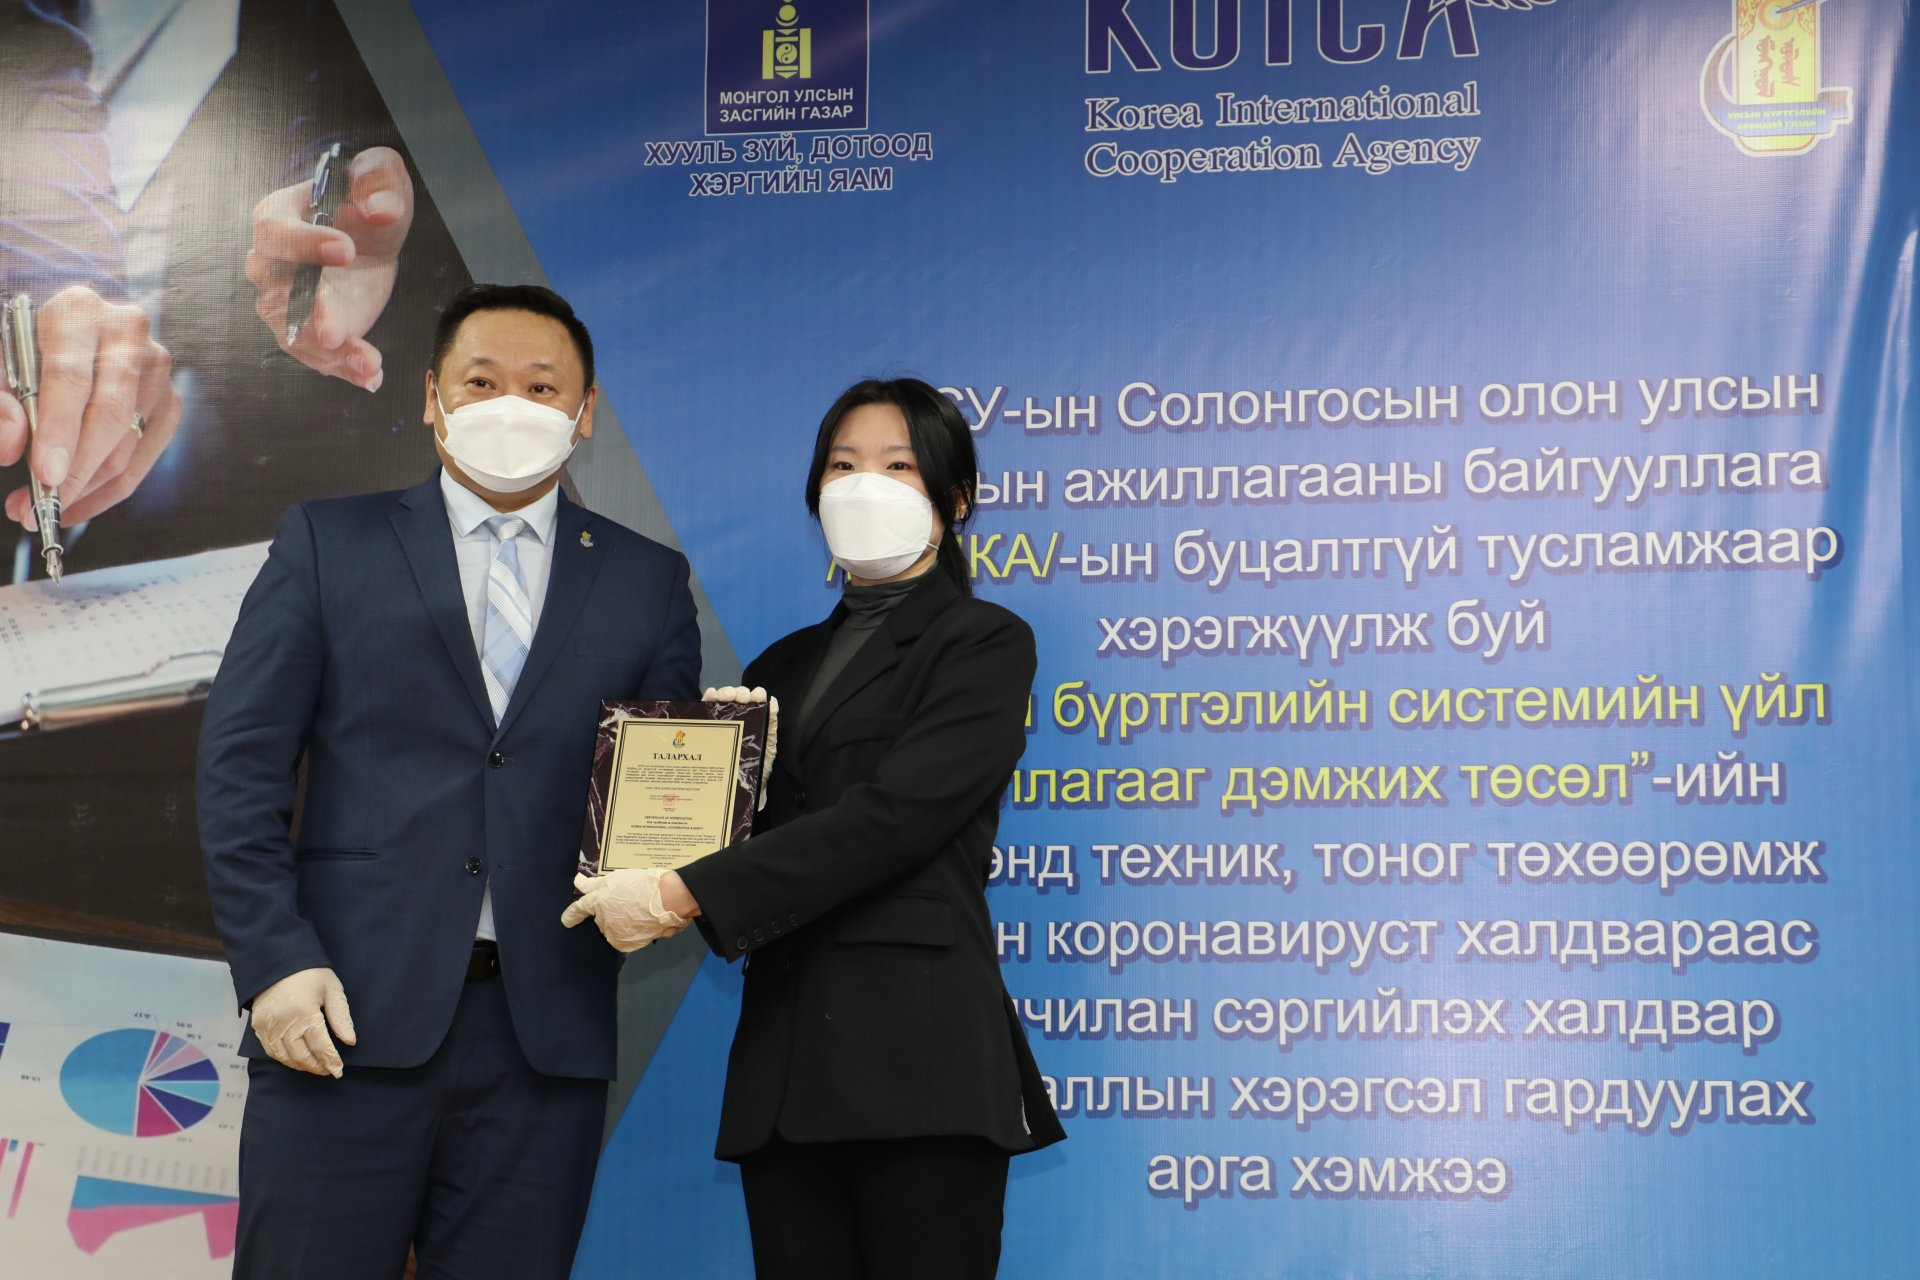 Within the framework of the KOICA project, technical equipment and protective equipment against Covid-19 were handed over